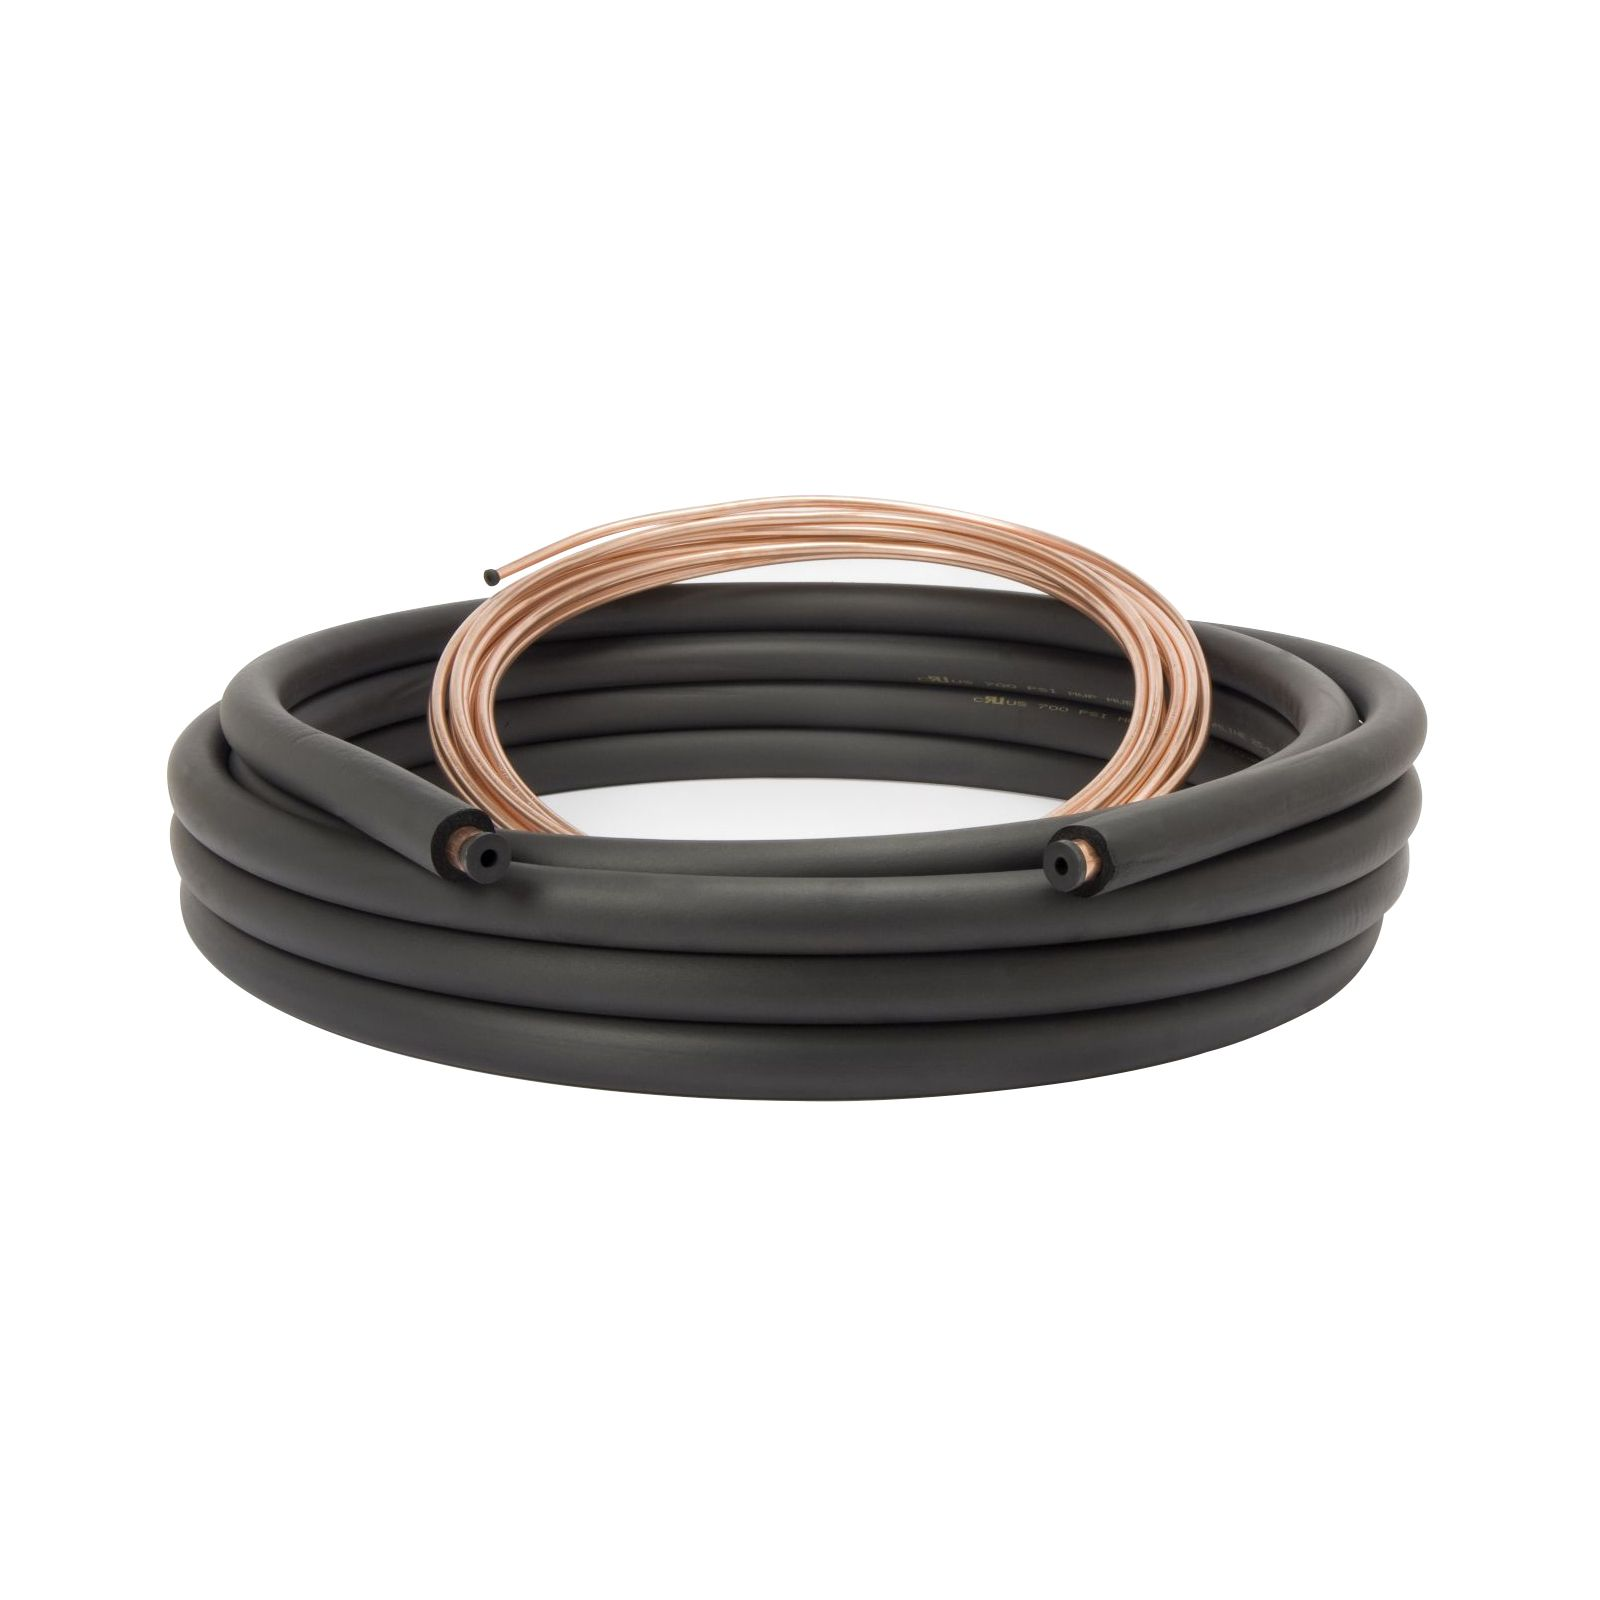 "Streamline 61480300 - Copper Line Set 3/8"" x 7/8"" x 3/8"" Insulation, 30' Length I.D."